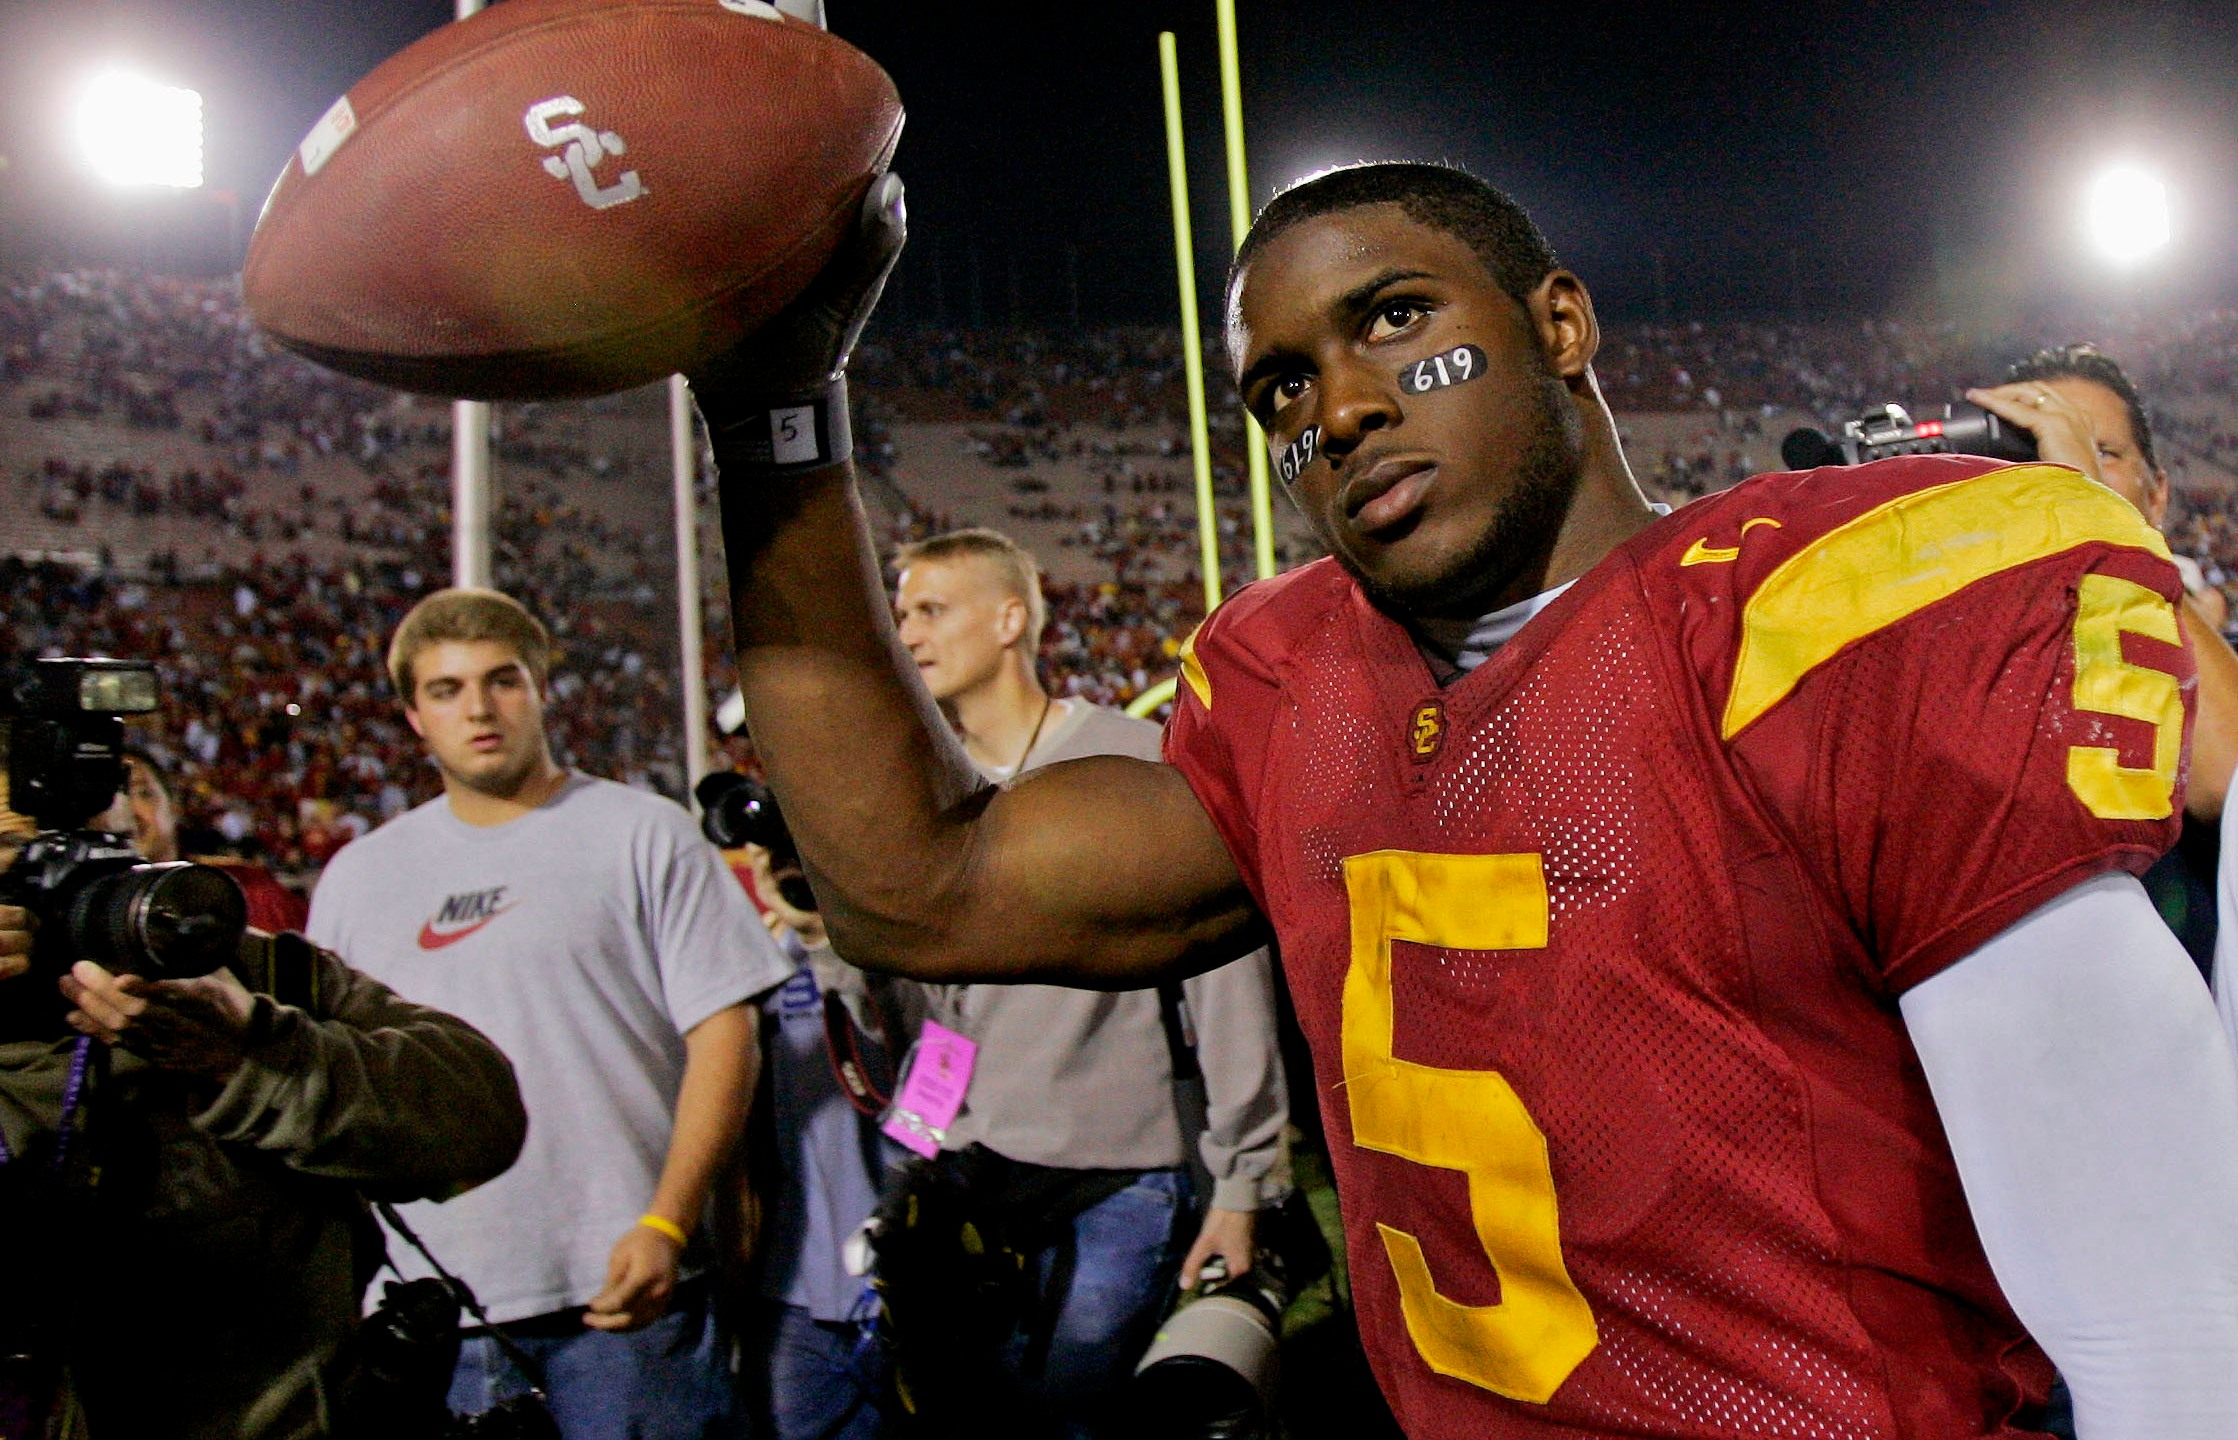 Southern California tail back Reggie Bush walks off the field holding the game ball after the Trojans defeated Fresno State, 50-42, at the Los Angeles Coliseum on Nov. 19, 2005. (Kevork Djansezian / Associated Press)